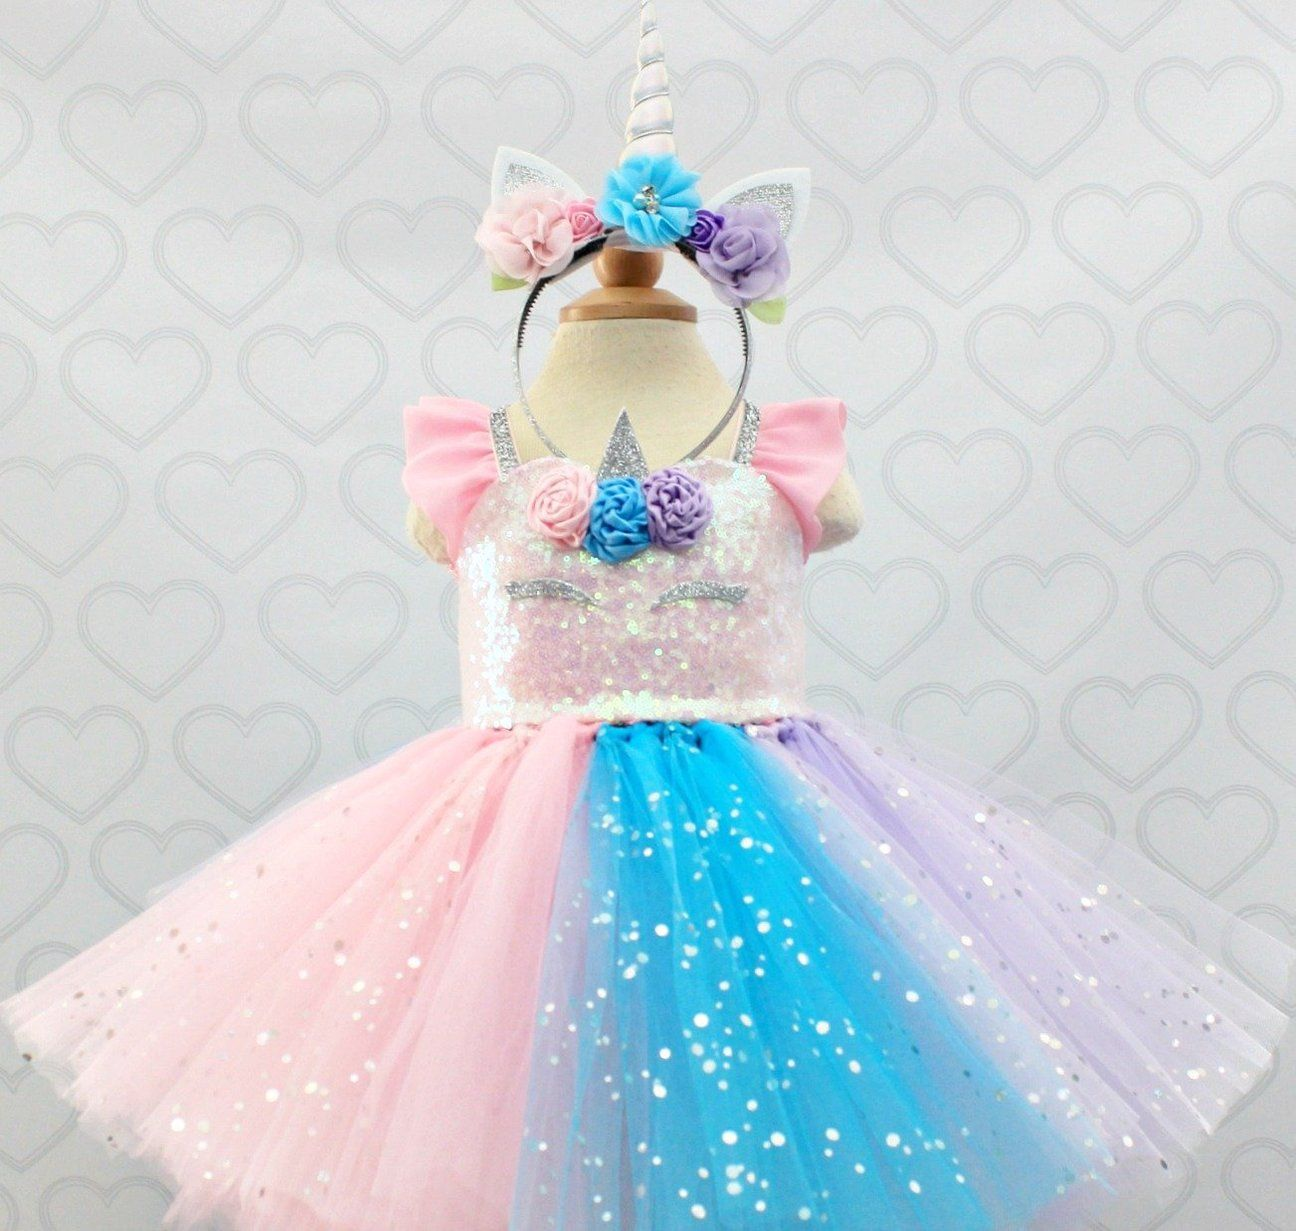 e63a3f722f948 Unicorn dress-unicorn tutu dress-unicorn birthday dress-unicorn tutu ...